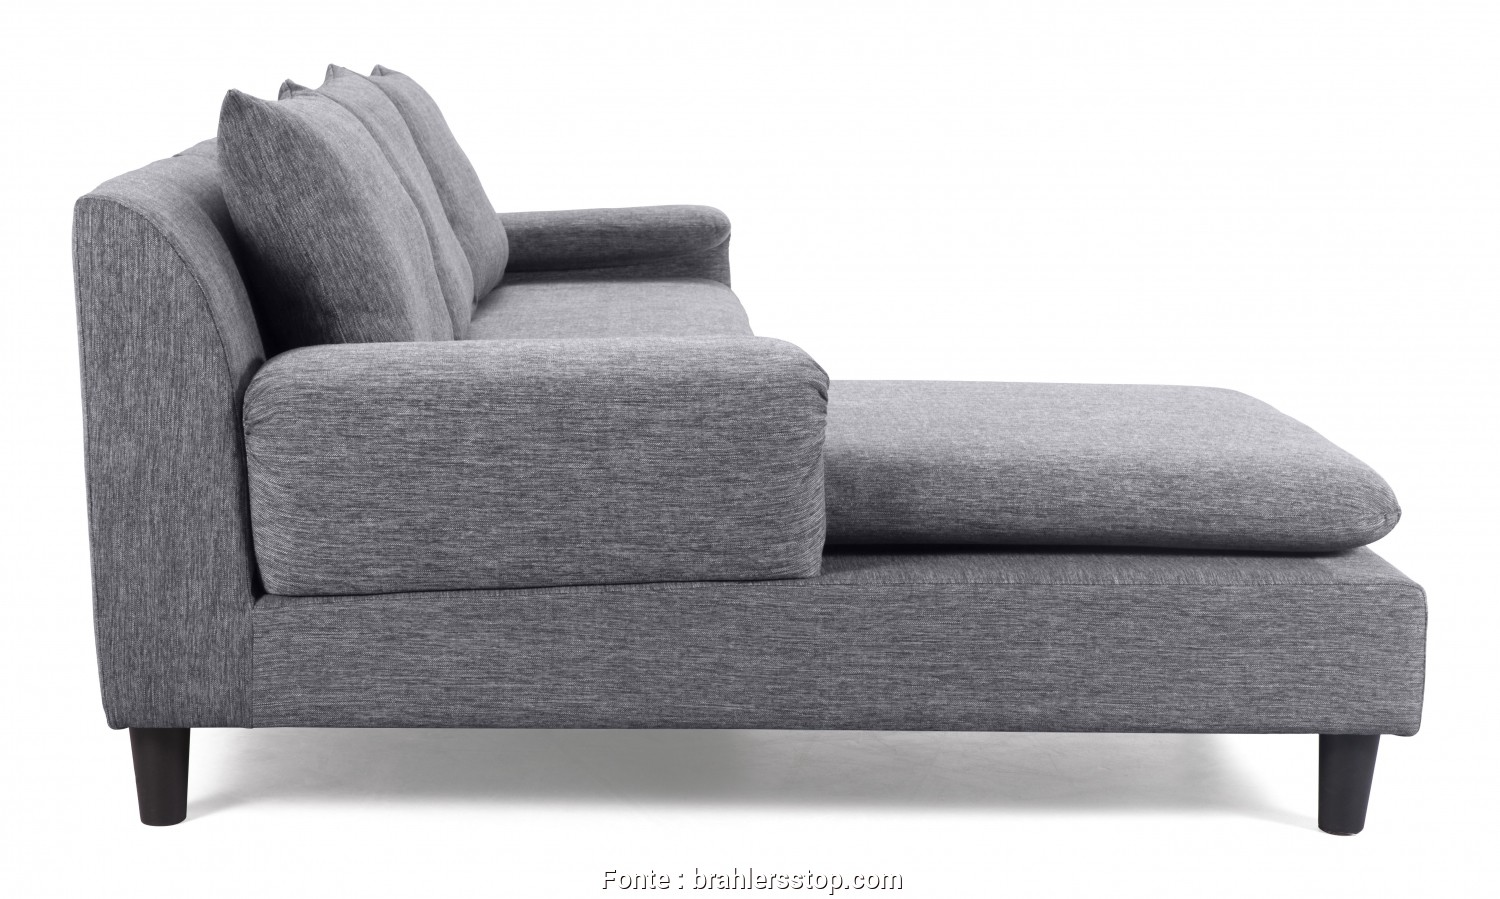 Vilasund Ikea France, Bellissimo Awesome Gray Fabric 3 Seater Ikea Sectionals, Home Furnishings Ideas, Living Room Design